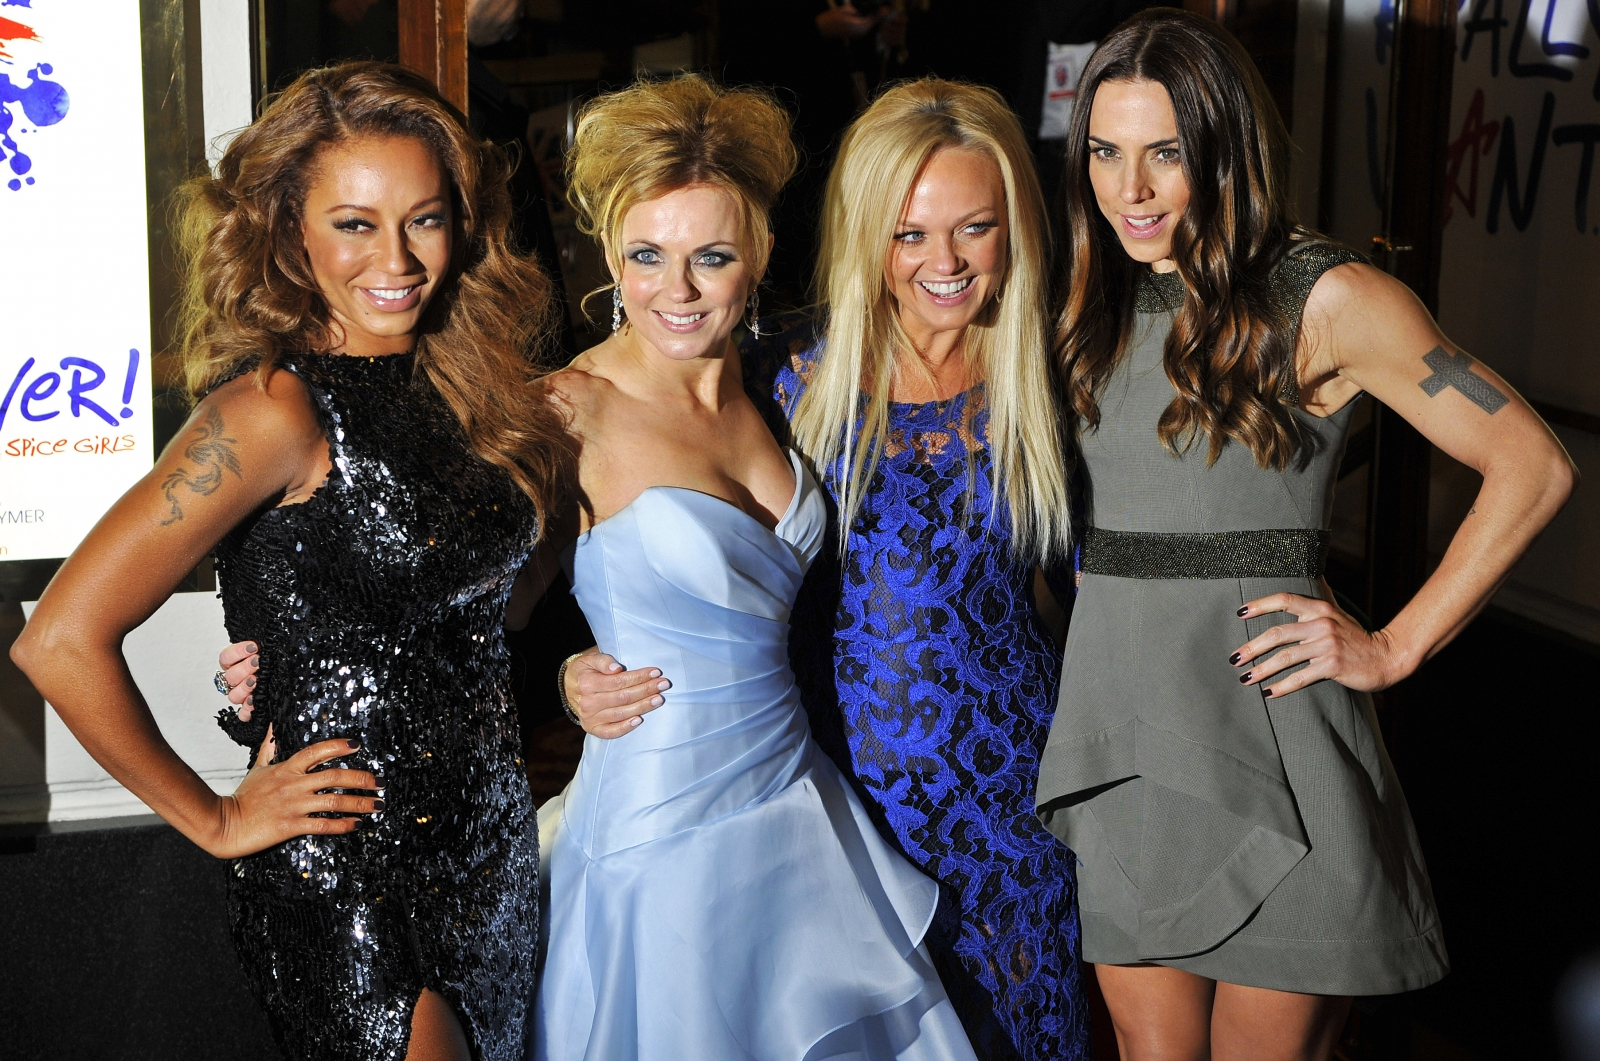 The Spice Girls at the Viva Forever Launch